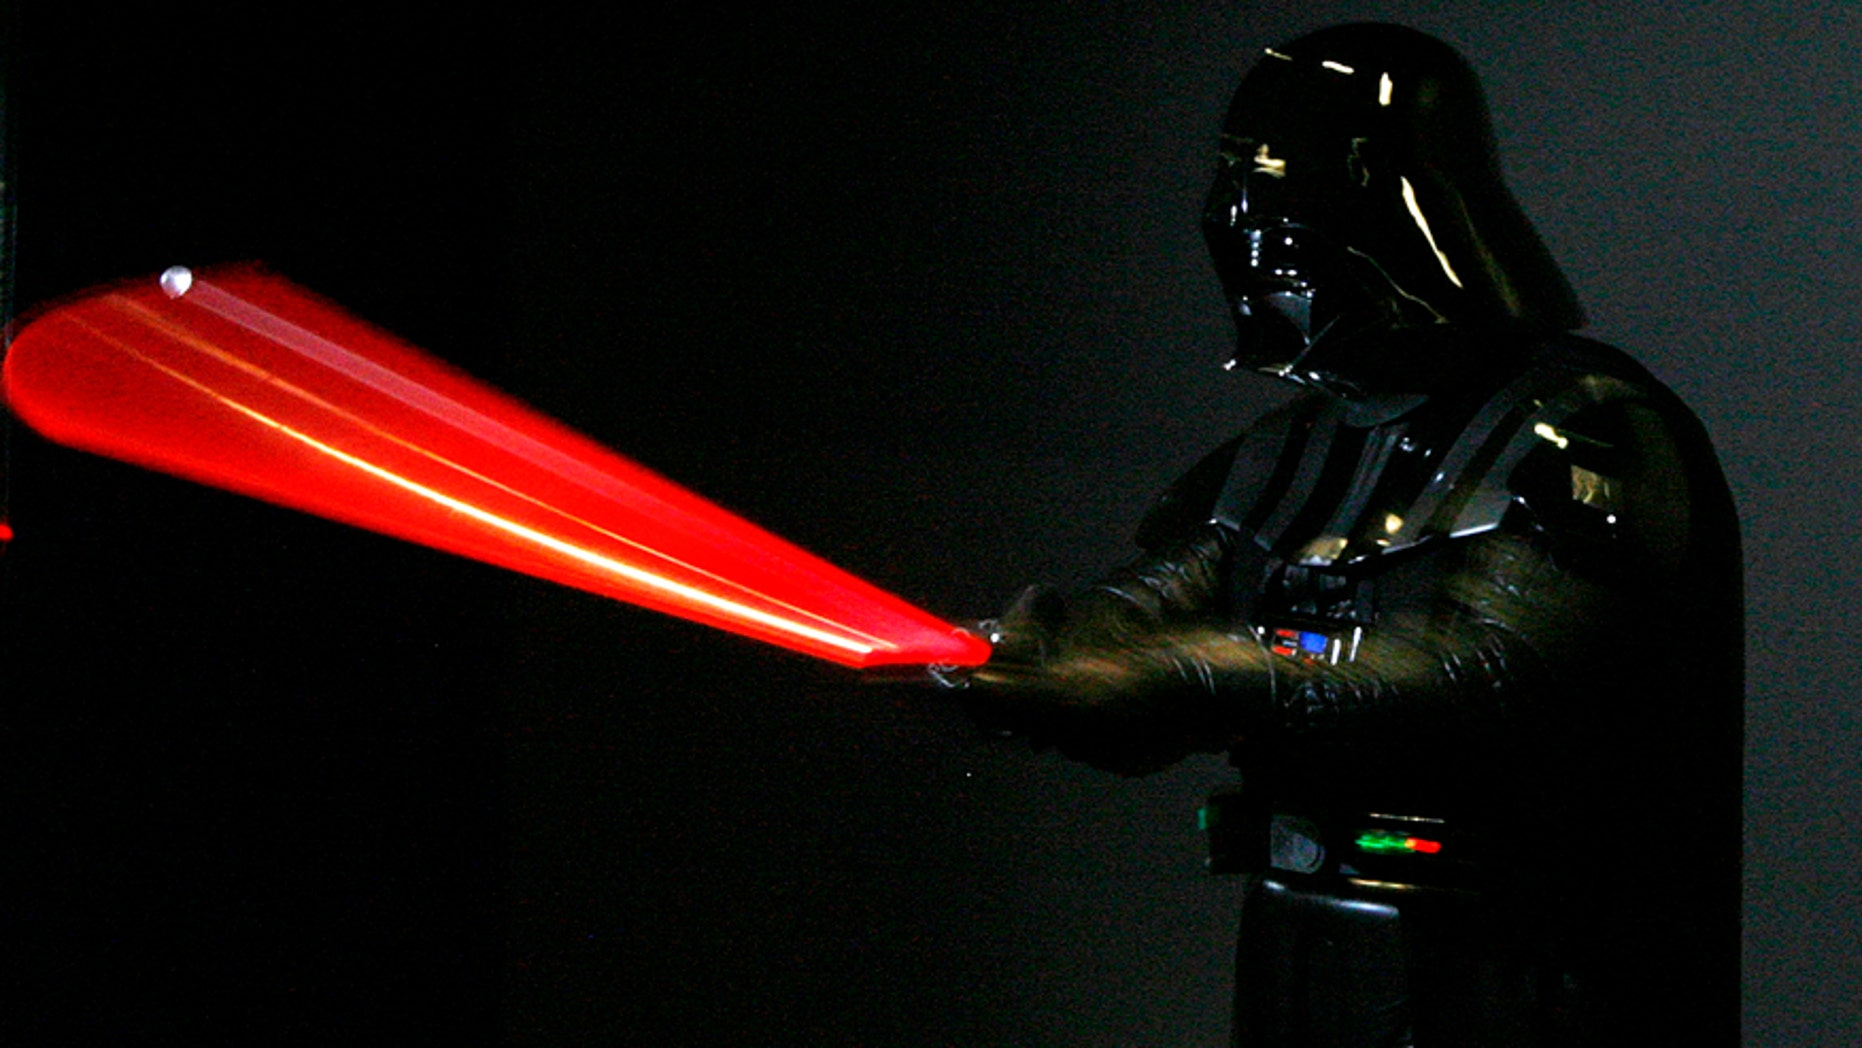 """A man dressed as Star Wars character Darth Vader poses for photographers at the """"Star Wars: Where Science Meets Imagination"""" exhibition at the Powerhouse Museum in Sydney December 3, 2008."""